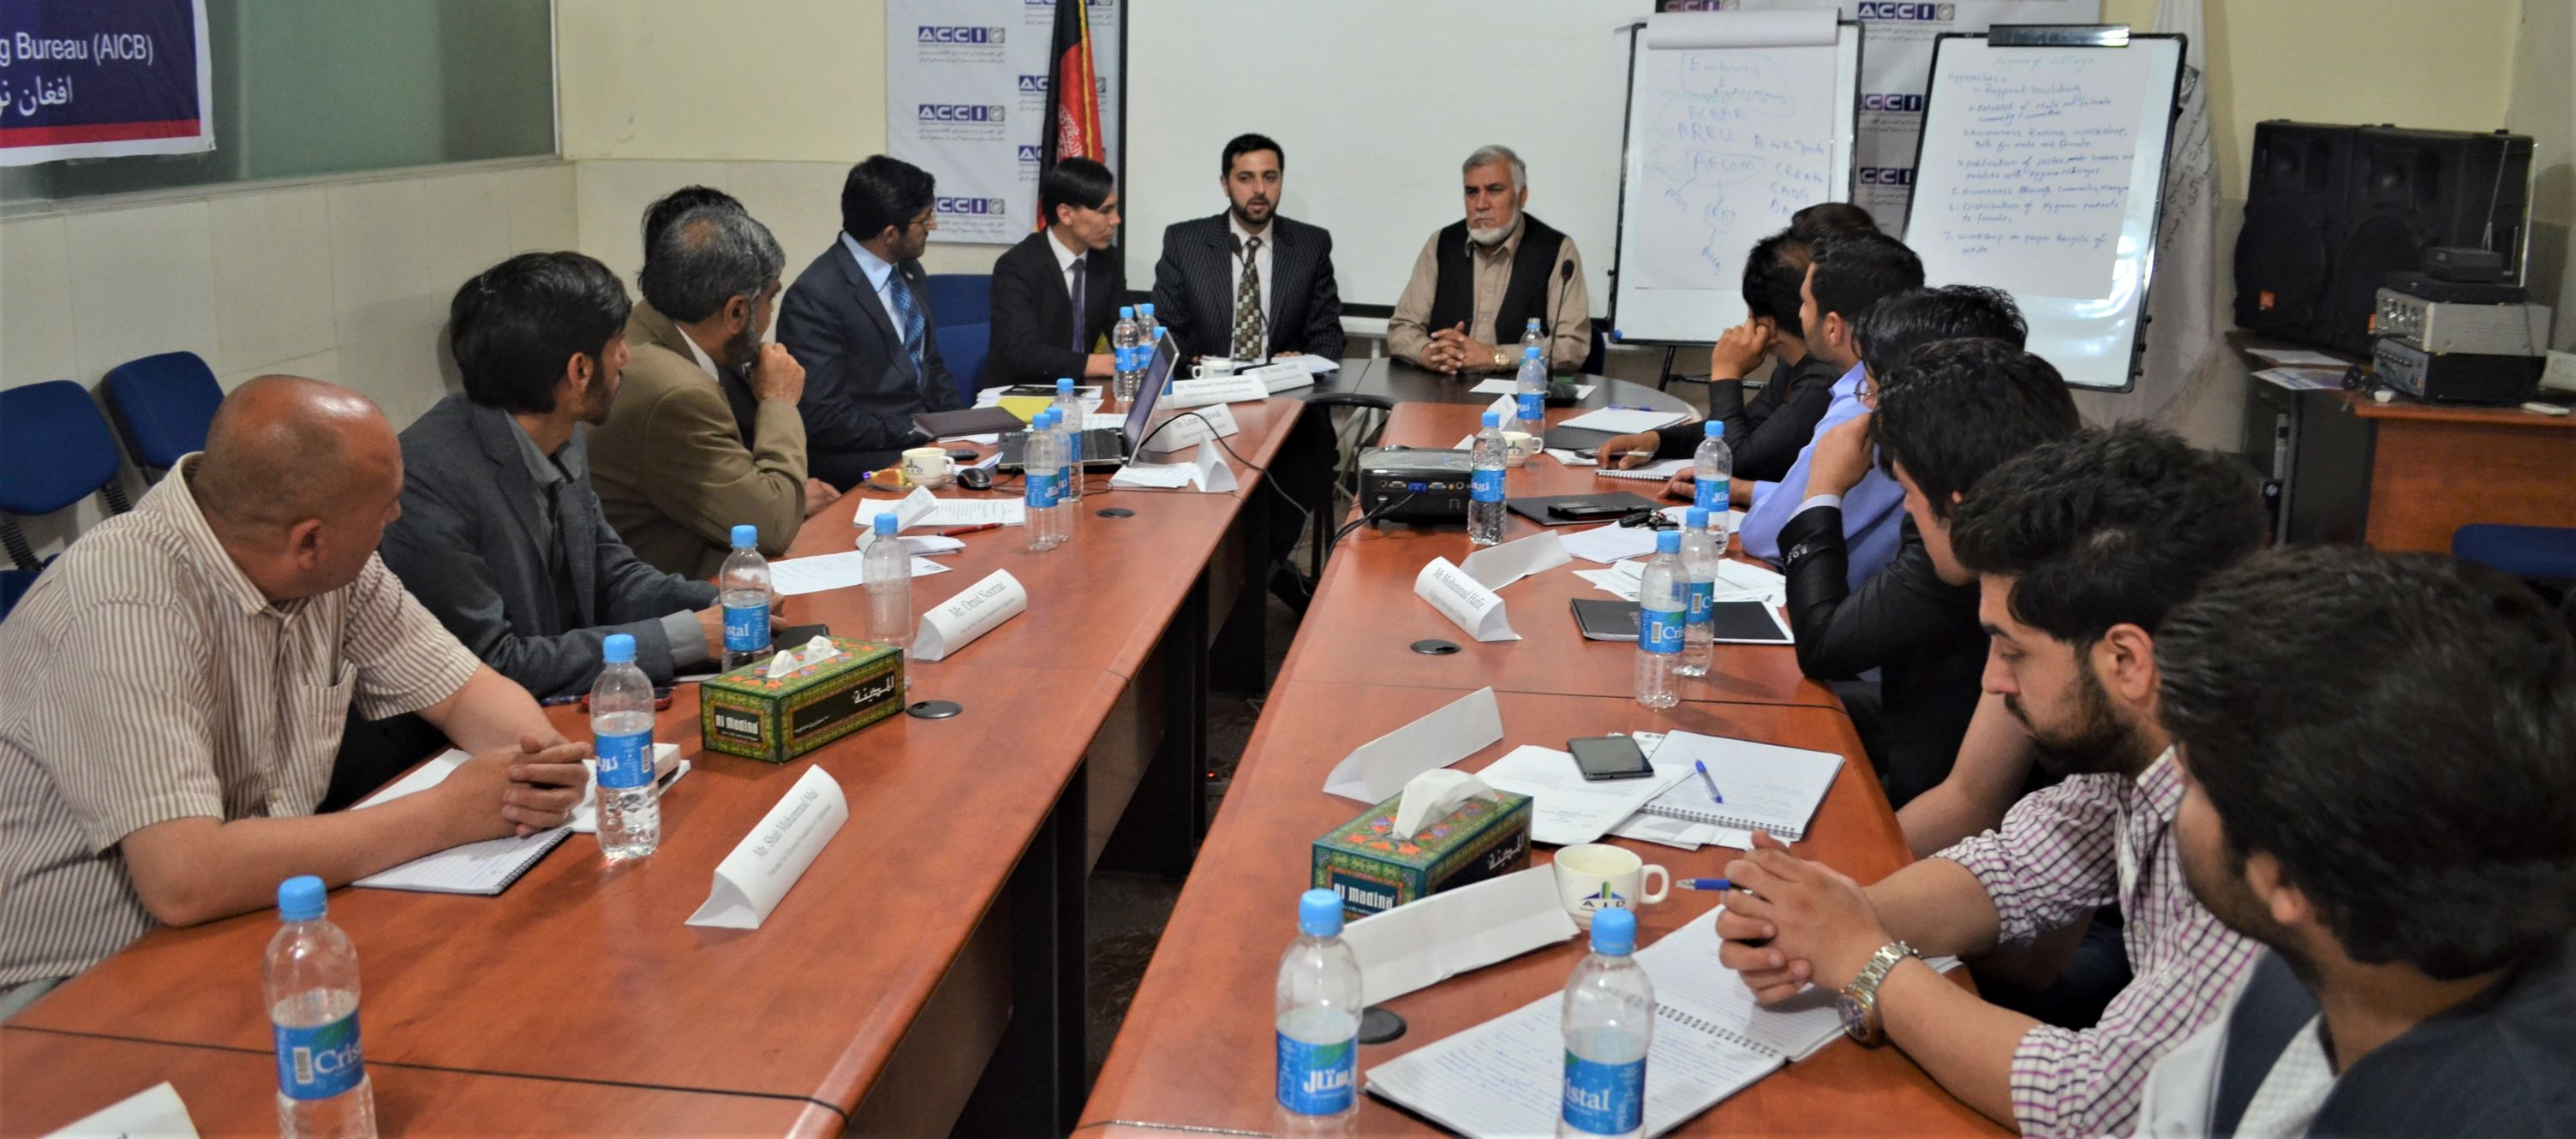 A meeting room full of people, Khan alokozay, project implementation, advisors, consultants, aicb, afghan innovative consulting bureau, consultancy, advisor, consultant, consultancy in Afghanistan, best consultancy